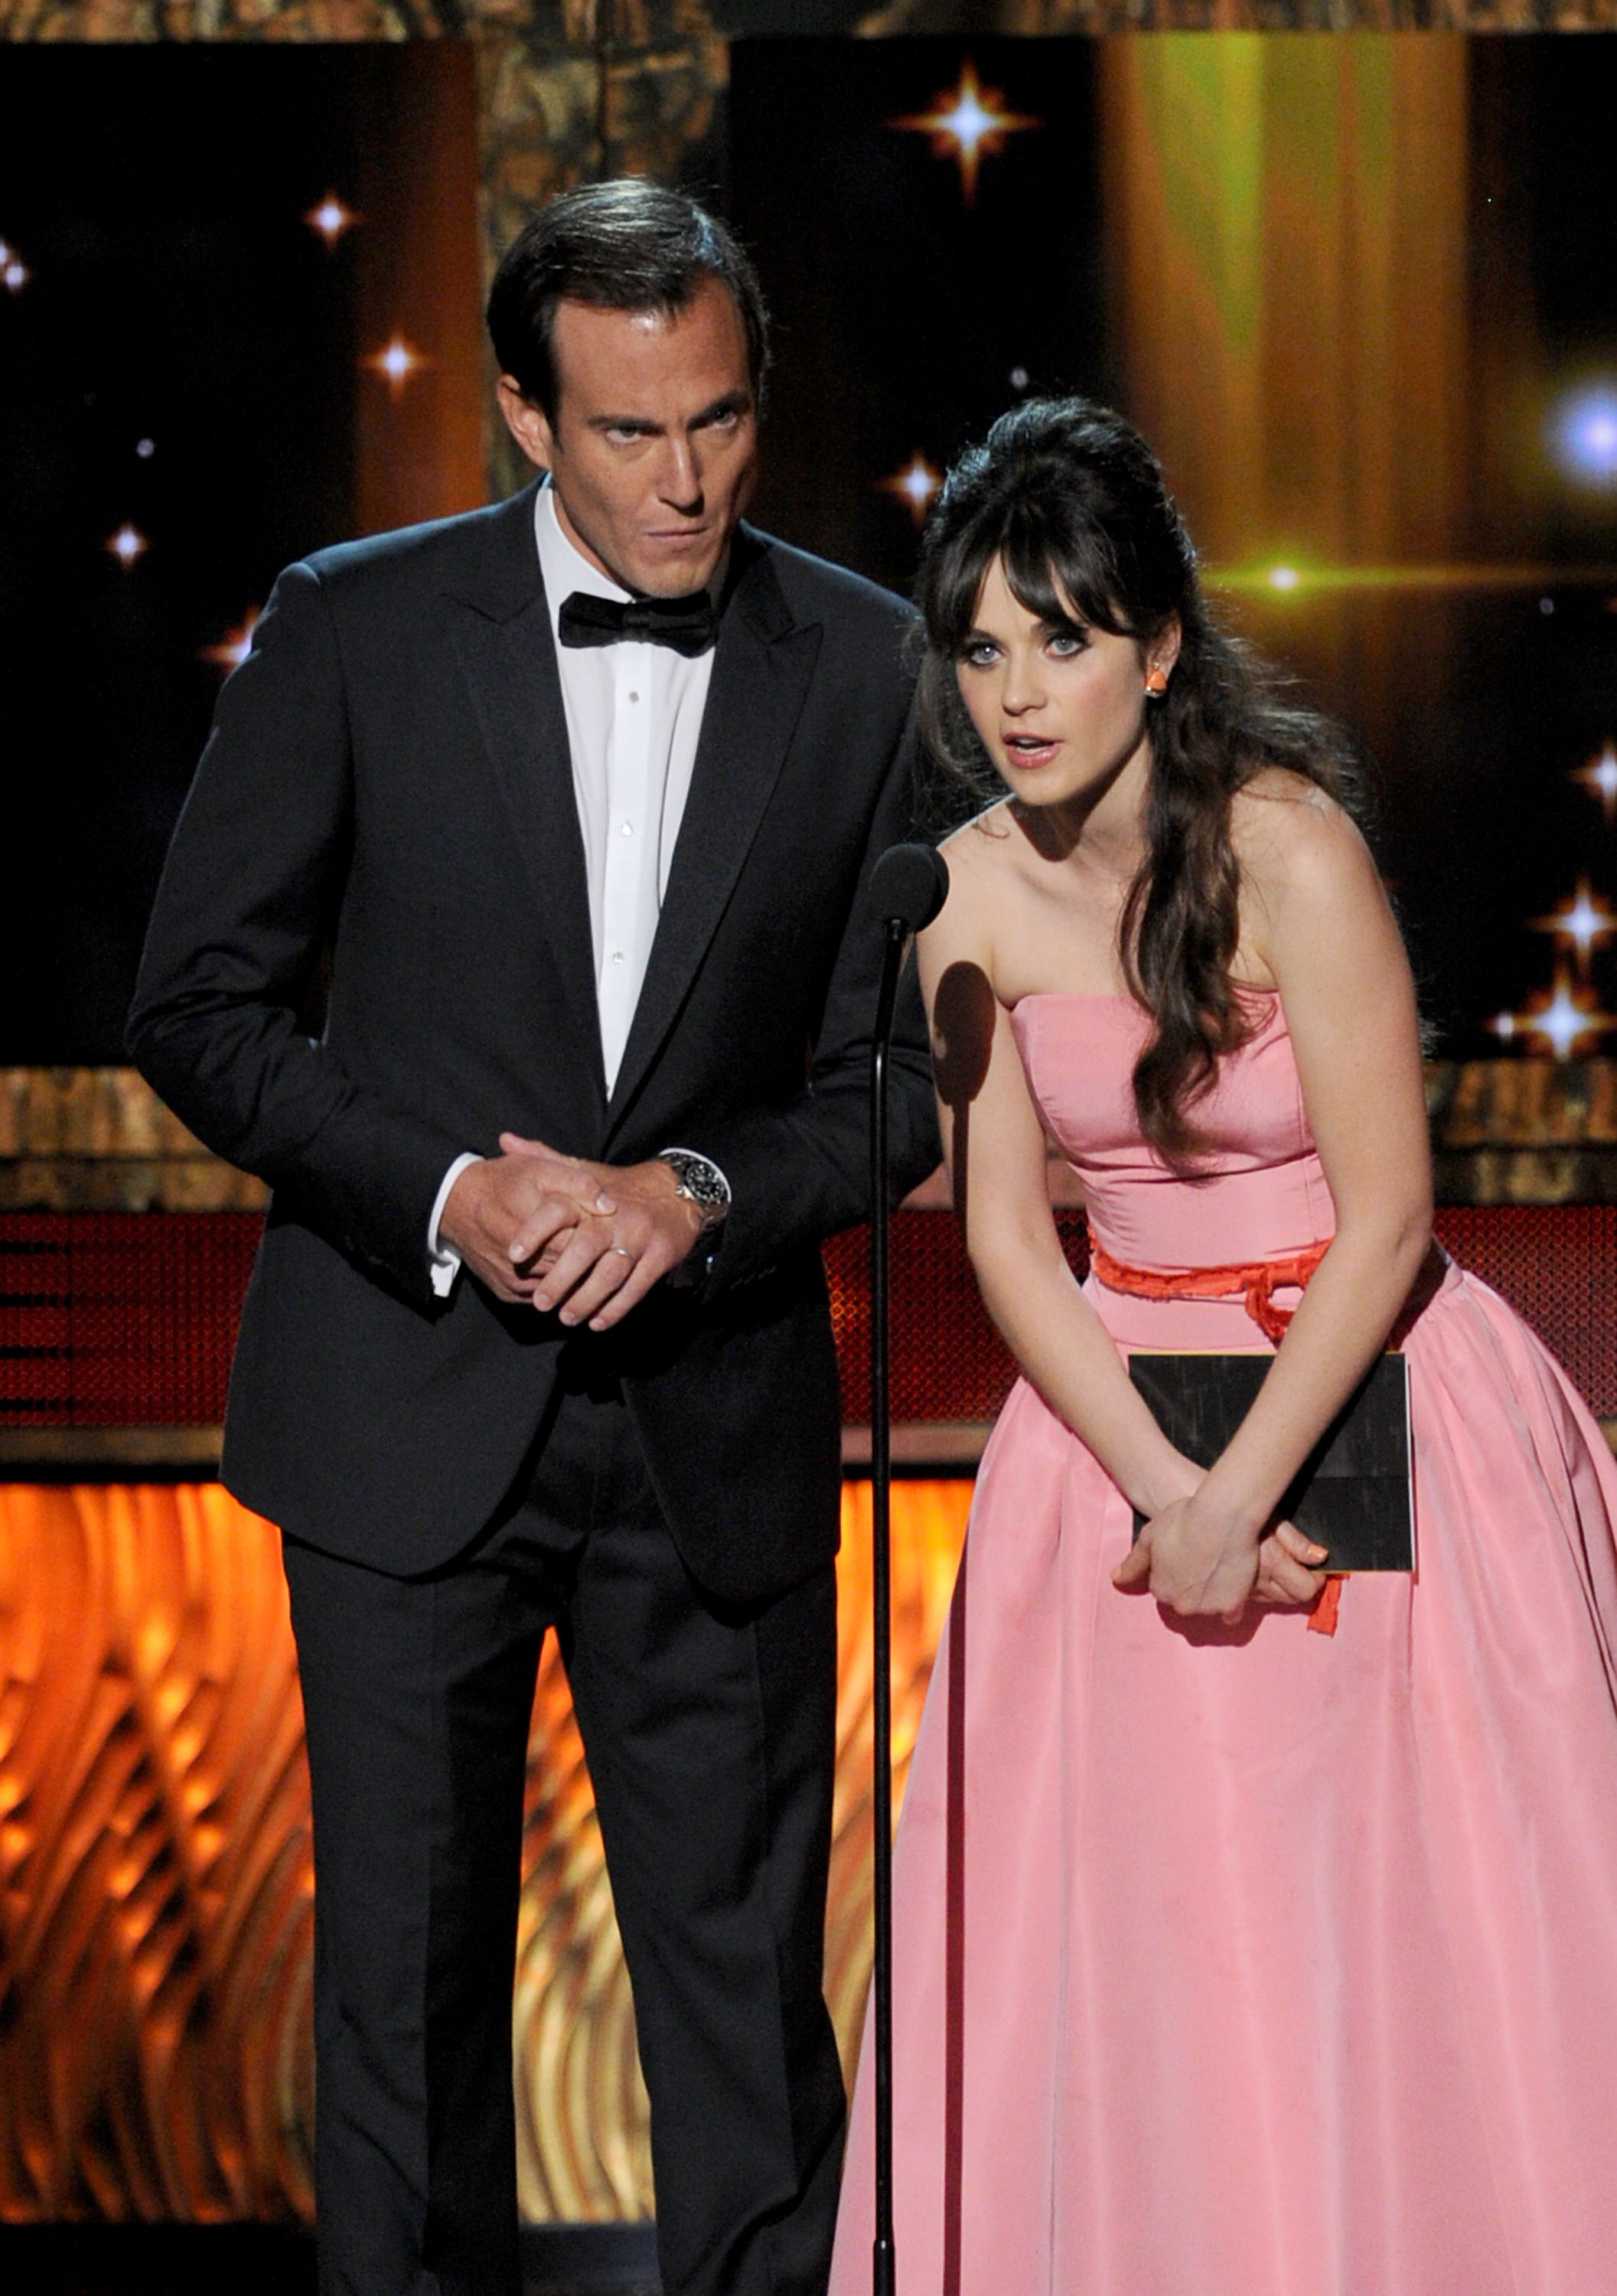 Will Arnett and Zooey Deschanel were presenters at the 2011 Emmy Awards.